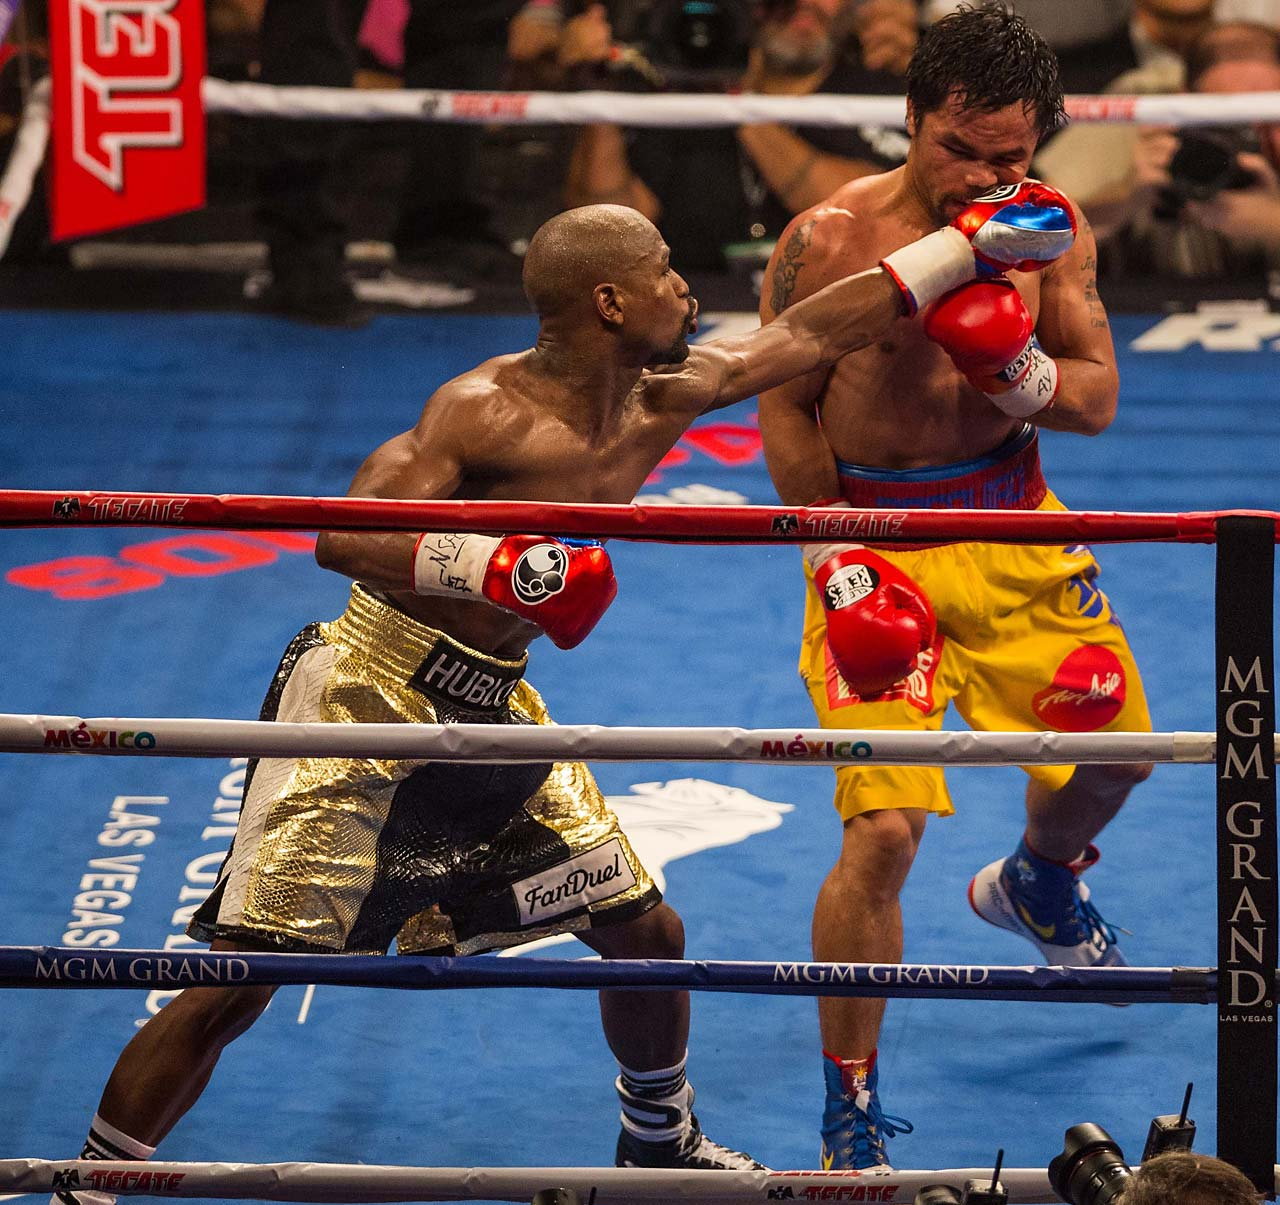 Mayweather was successful in throwing his his jab to keep Pacquiao at bay.